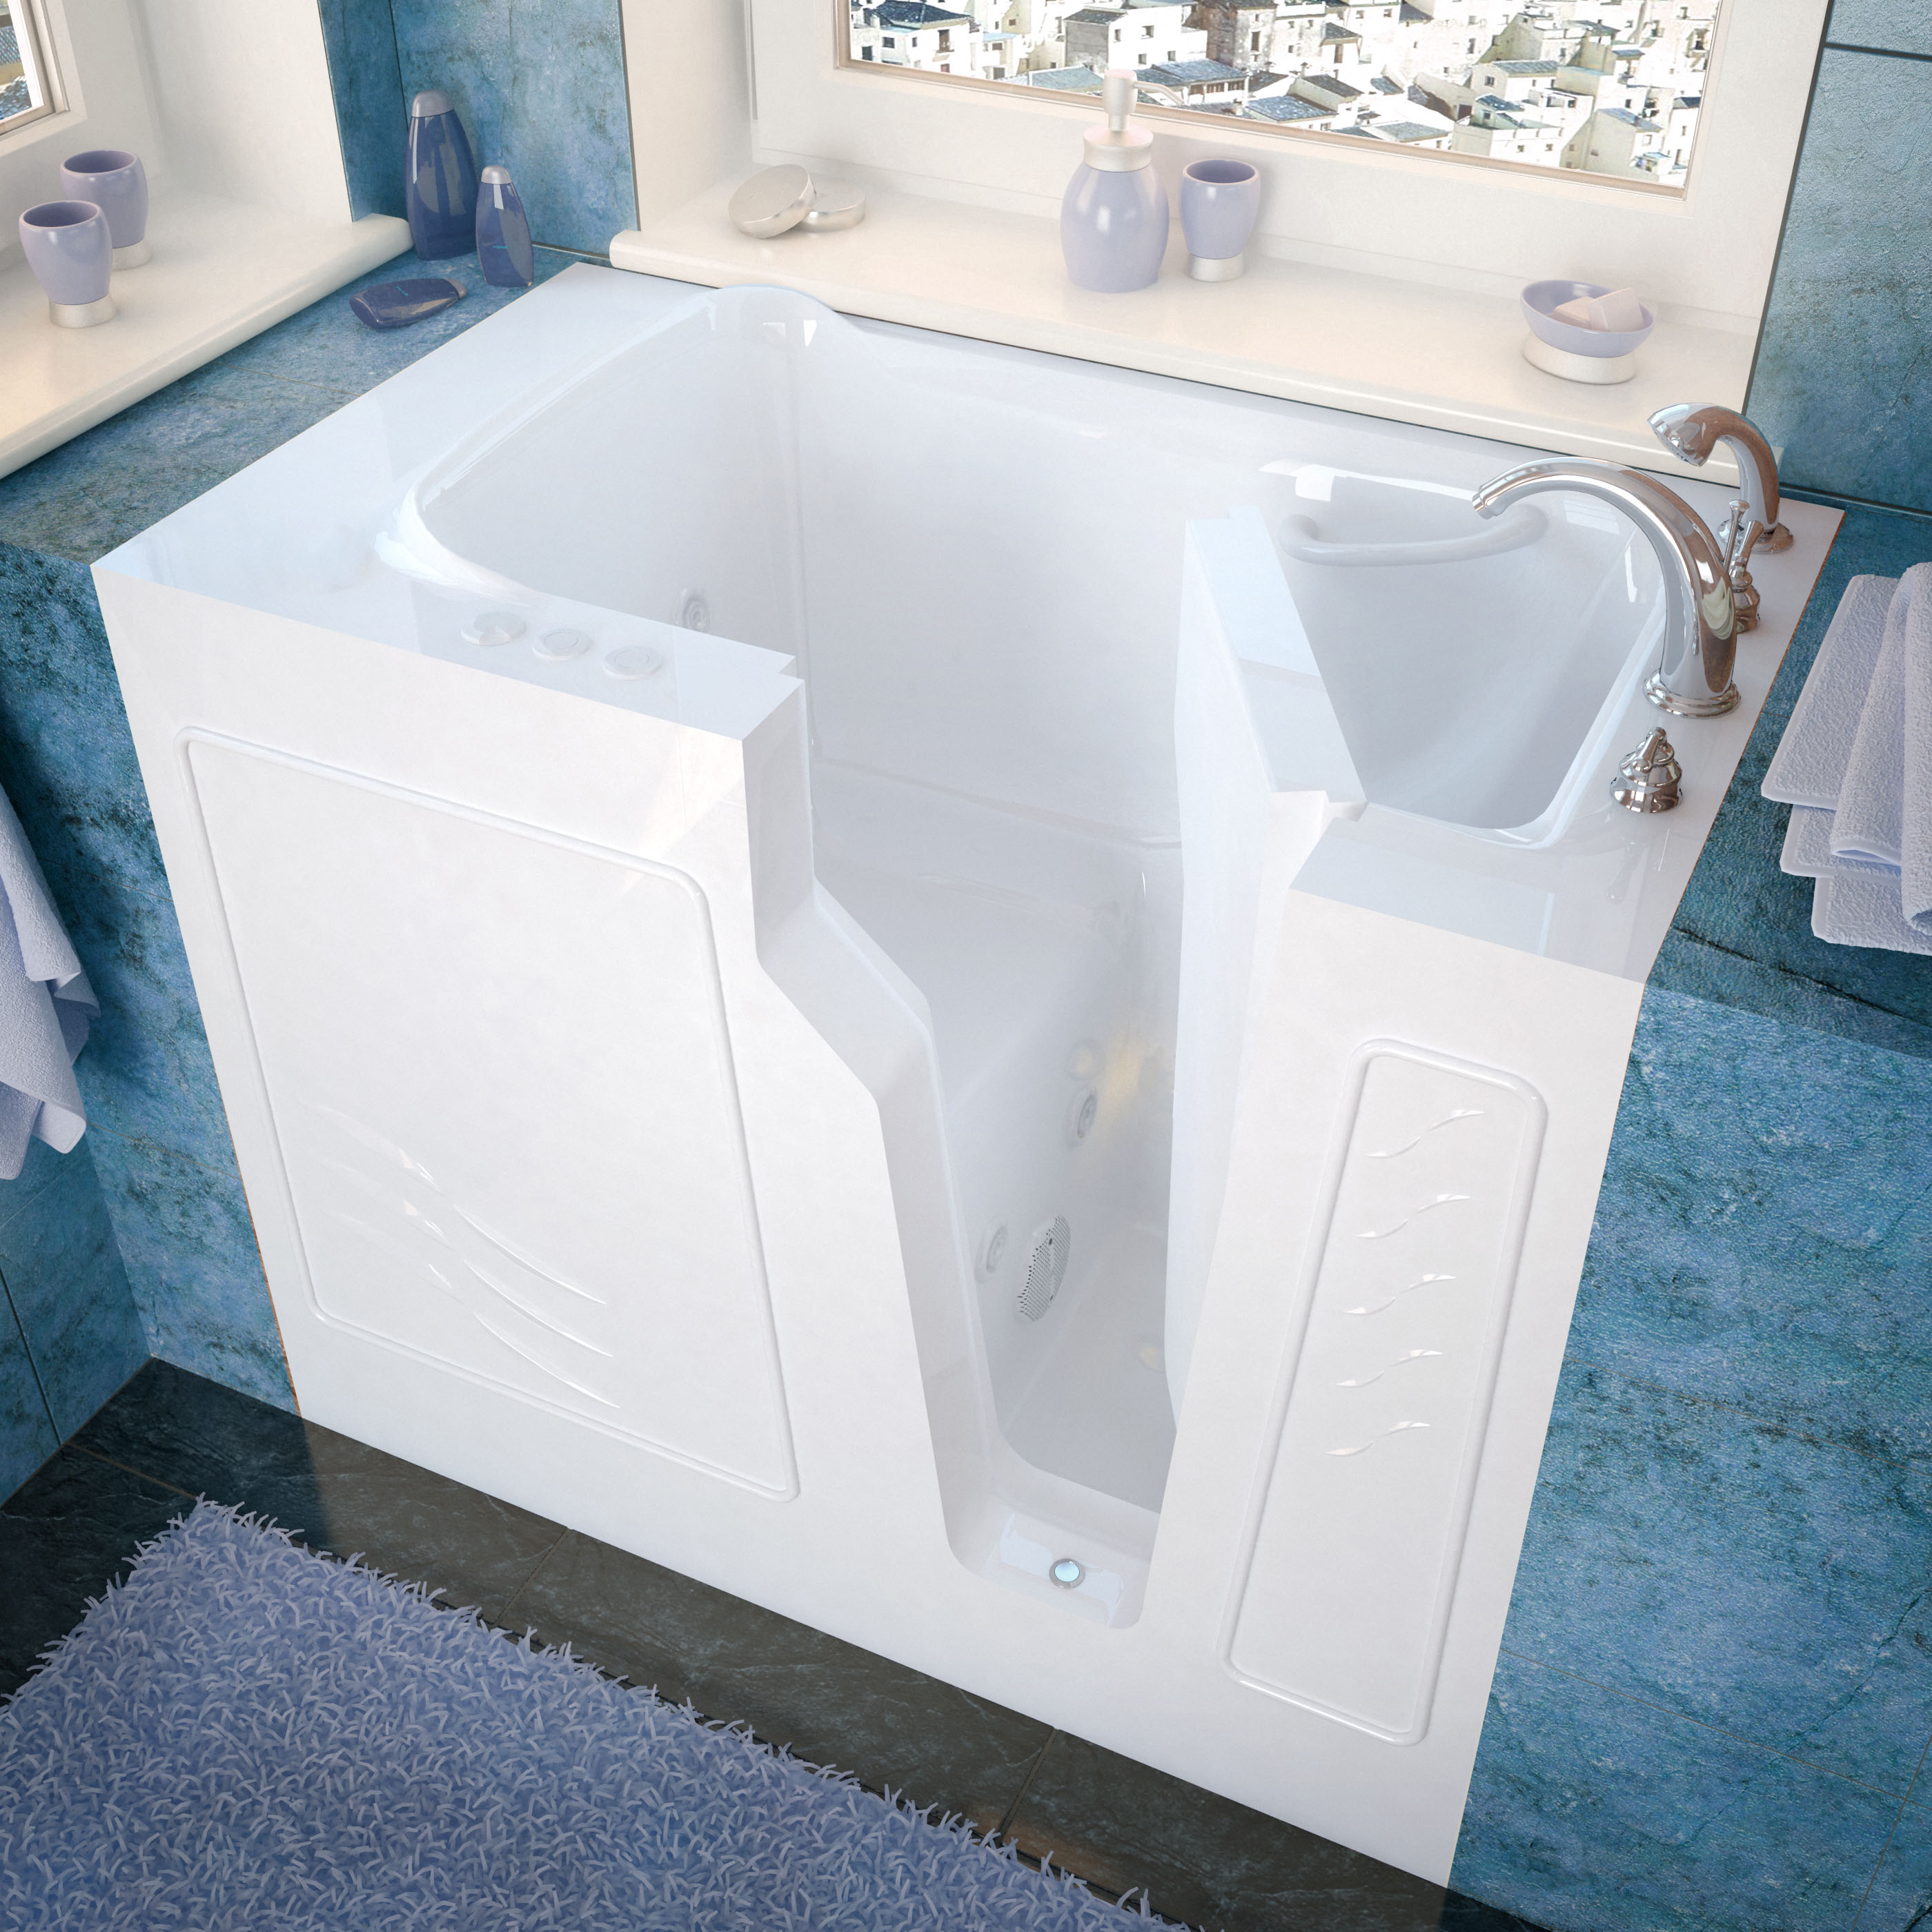 26x46 Right Drain White Whirlpool Jetted Walk-In Bathtub